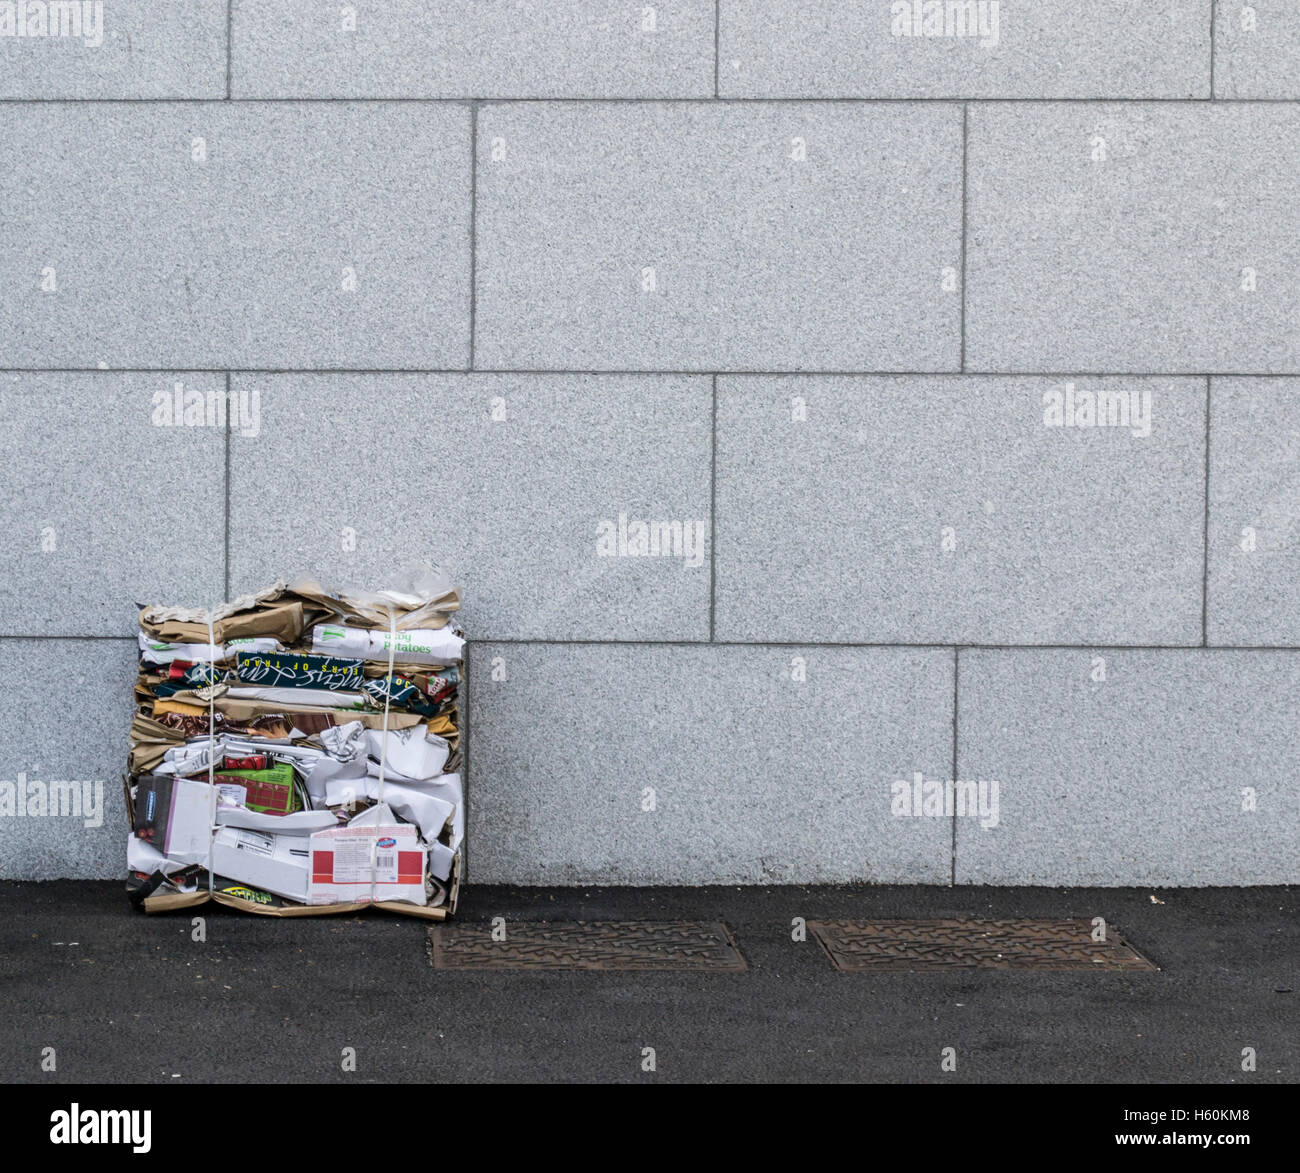 Flattened paper and cardboard recycling sits against a grey stone wall with drain covers on the path - Stock Image